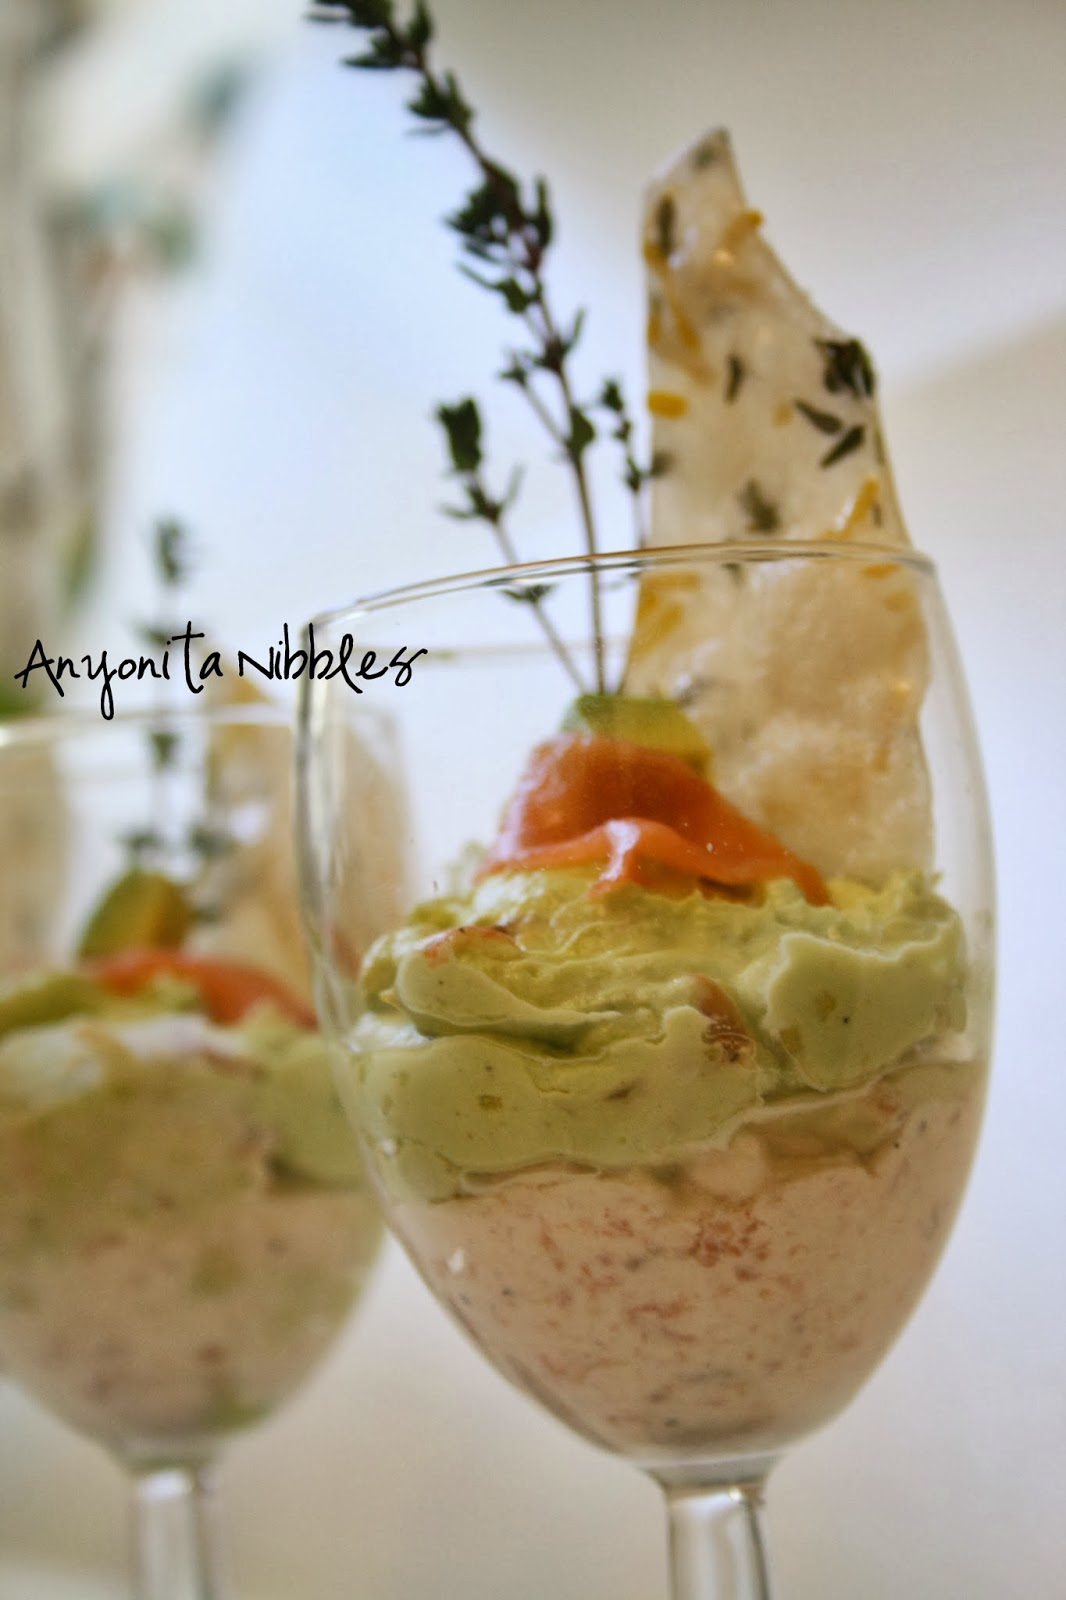 Savory mousse with lemon and thyme paper